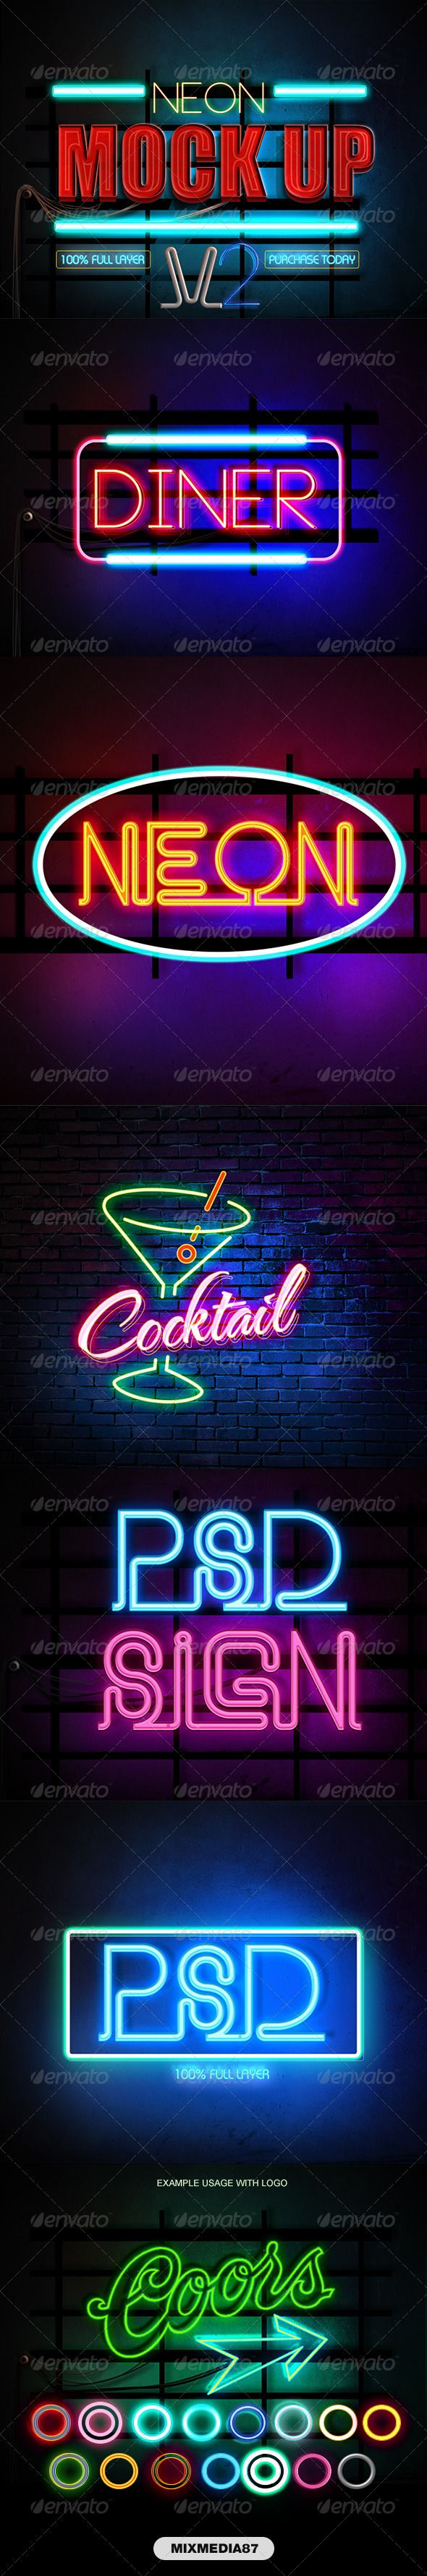 Neon Styles V2 action, add-on, asl, bar, brick wall, casino, club, effect, font, glow, light glow, logo mock, mockup, neon, party, photoshop, psd, pub, retro, sign, signage, style, text, typography, vegas, wall, wire, Neon Styles V2